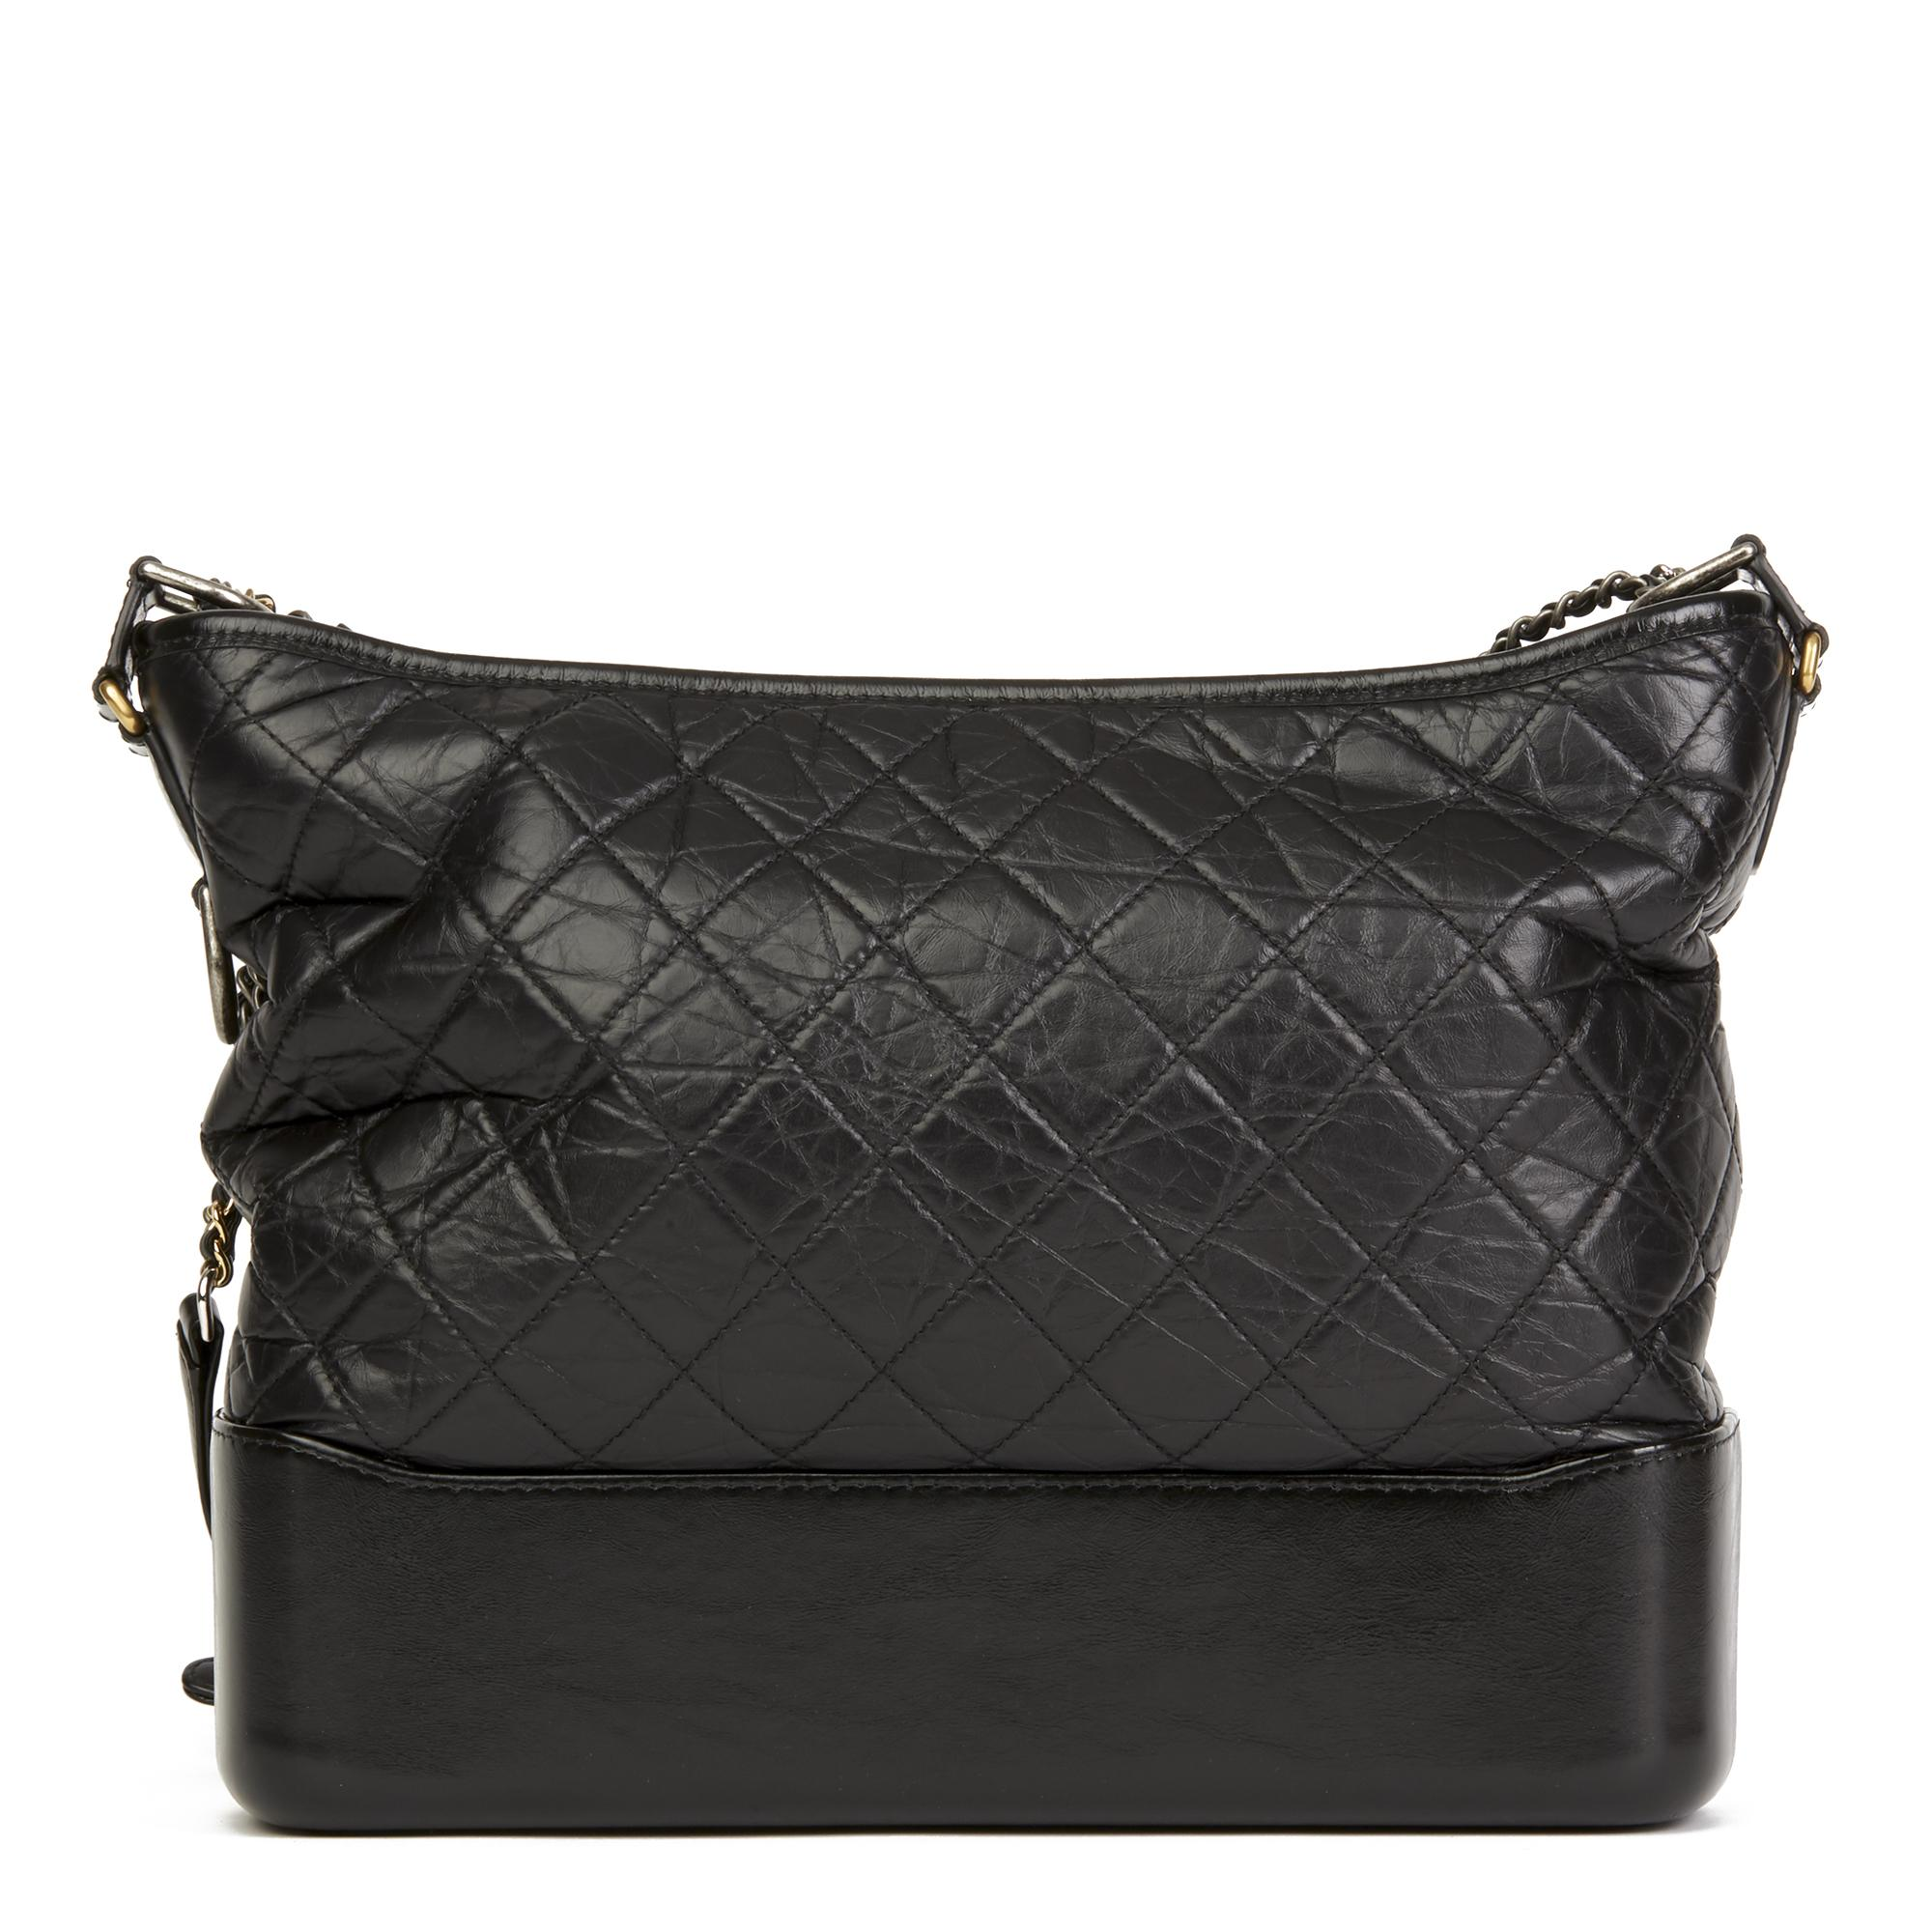 ae11c576d01e Chanel. Women's Black Quilted Aged Calfskin Leather Large Gabrielle Hobo Bag